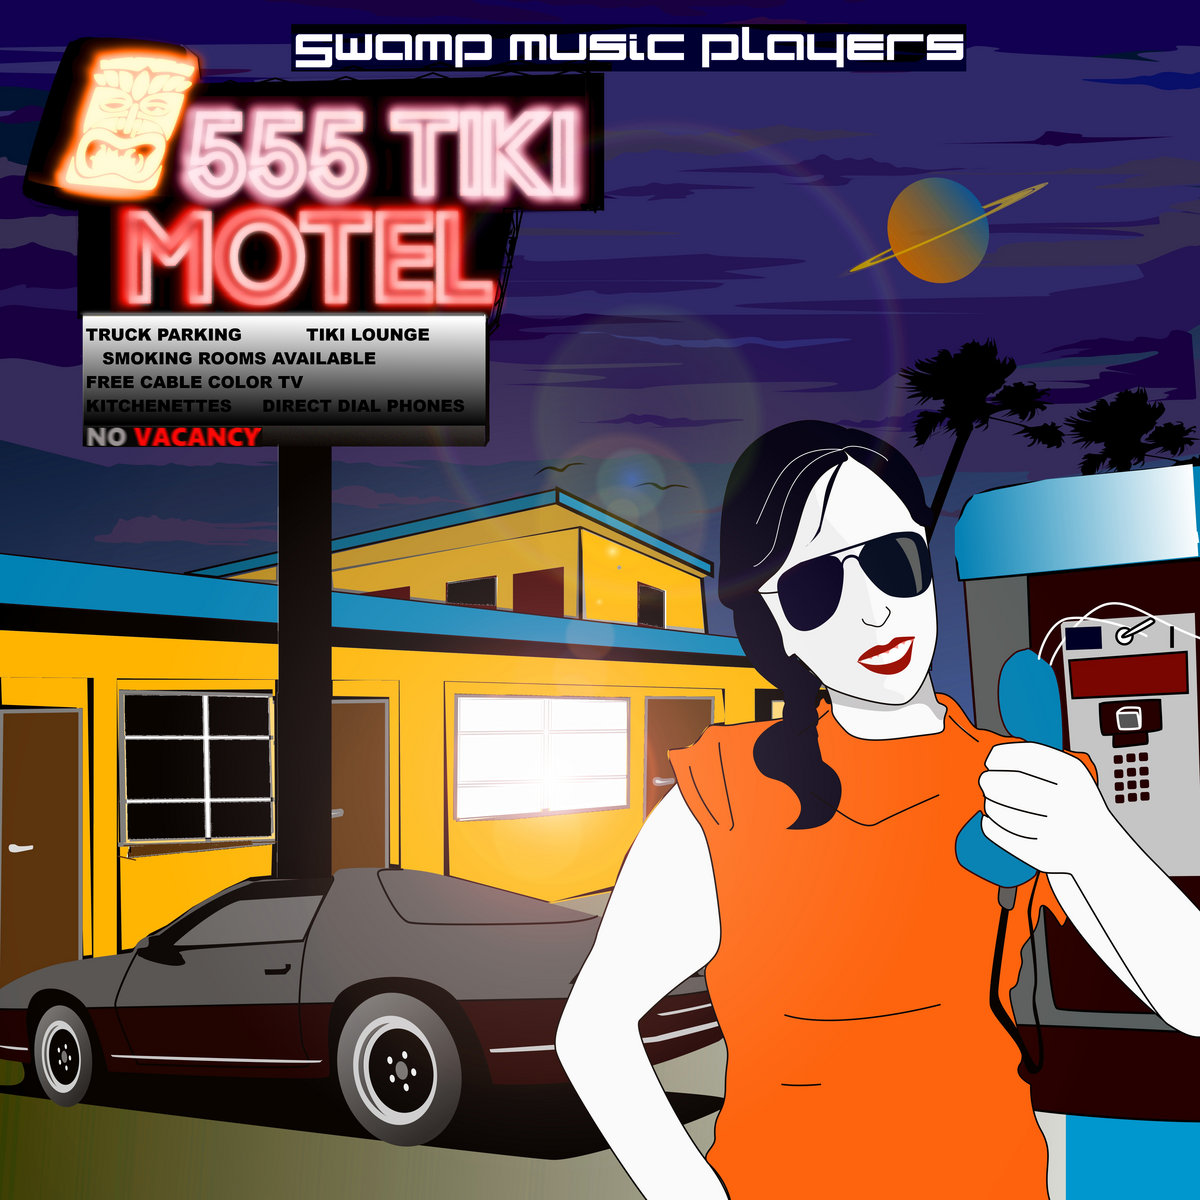 swamp music players - 555 tiki motel